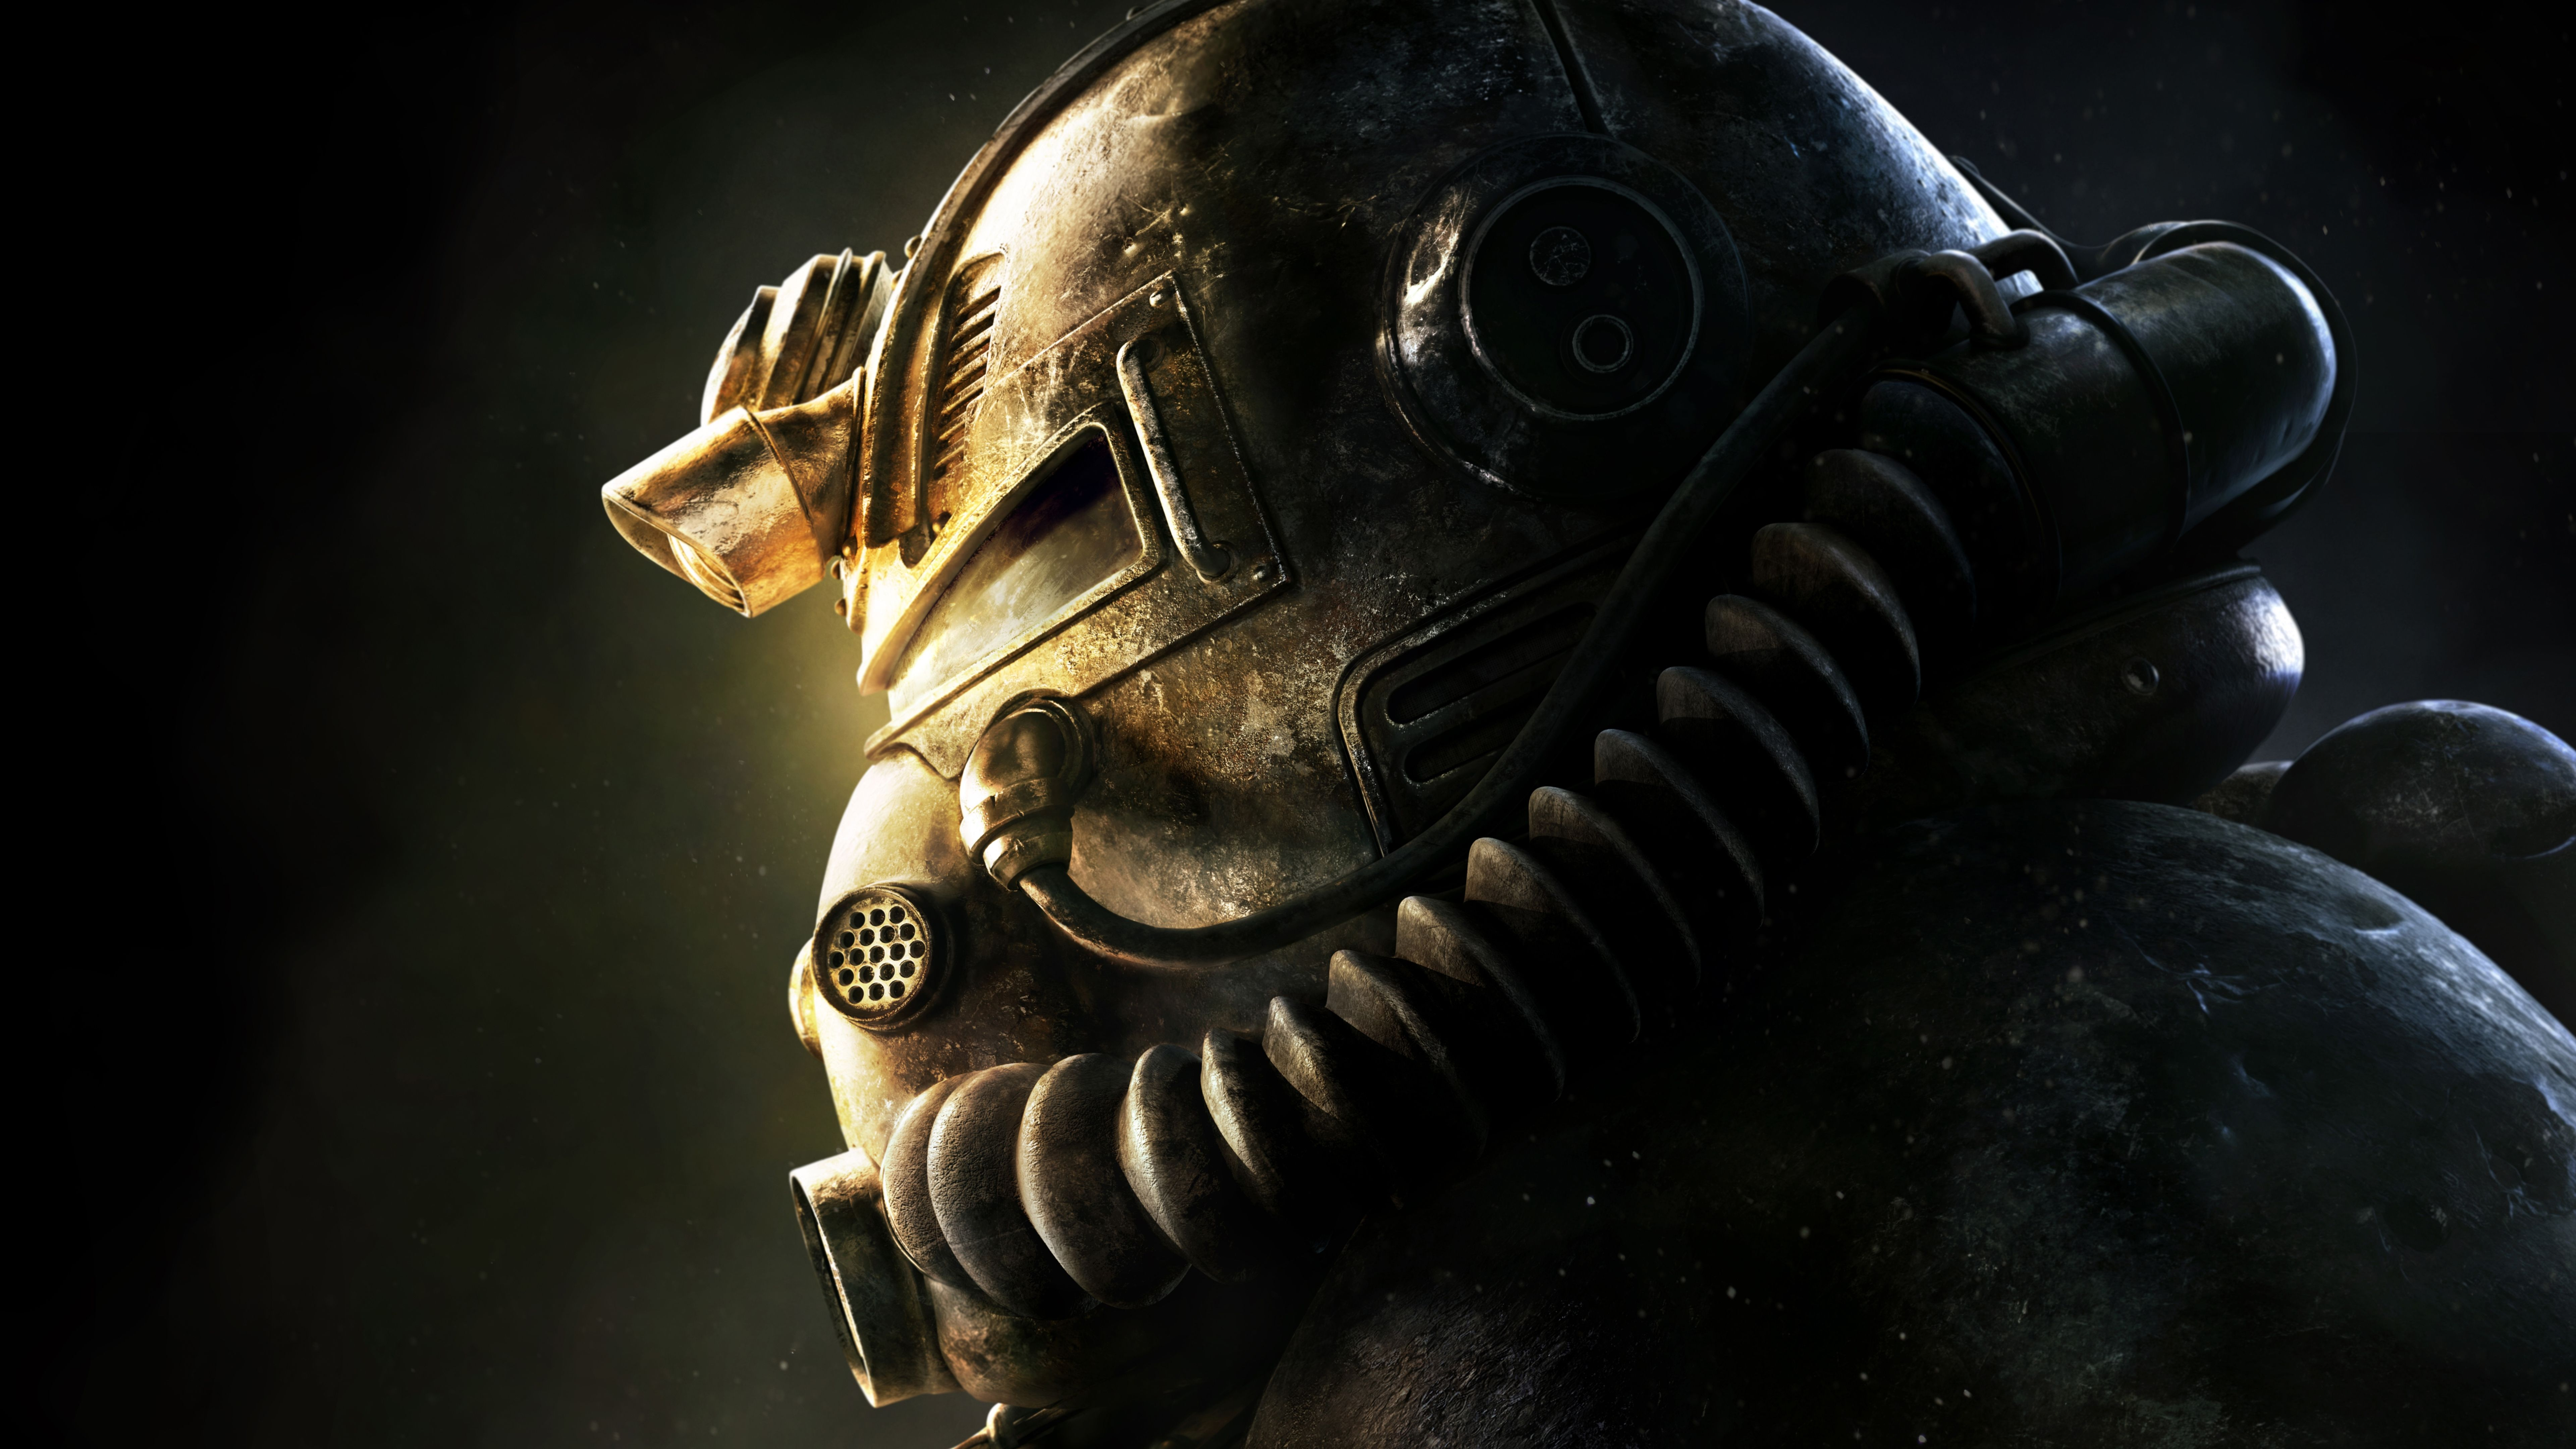 Fallout 76 Video Game T 51 Power Armor 7680x4320 Wallpaper Fallout Fallout Game Power Armor